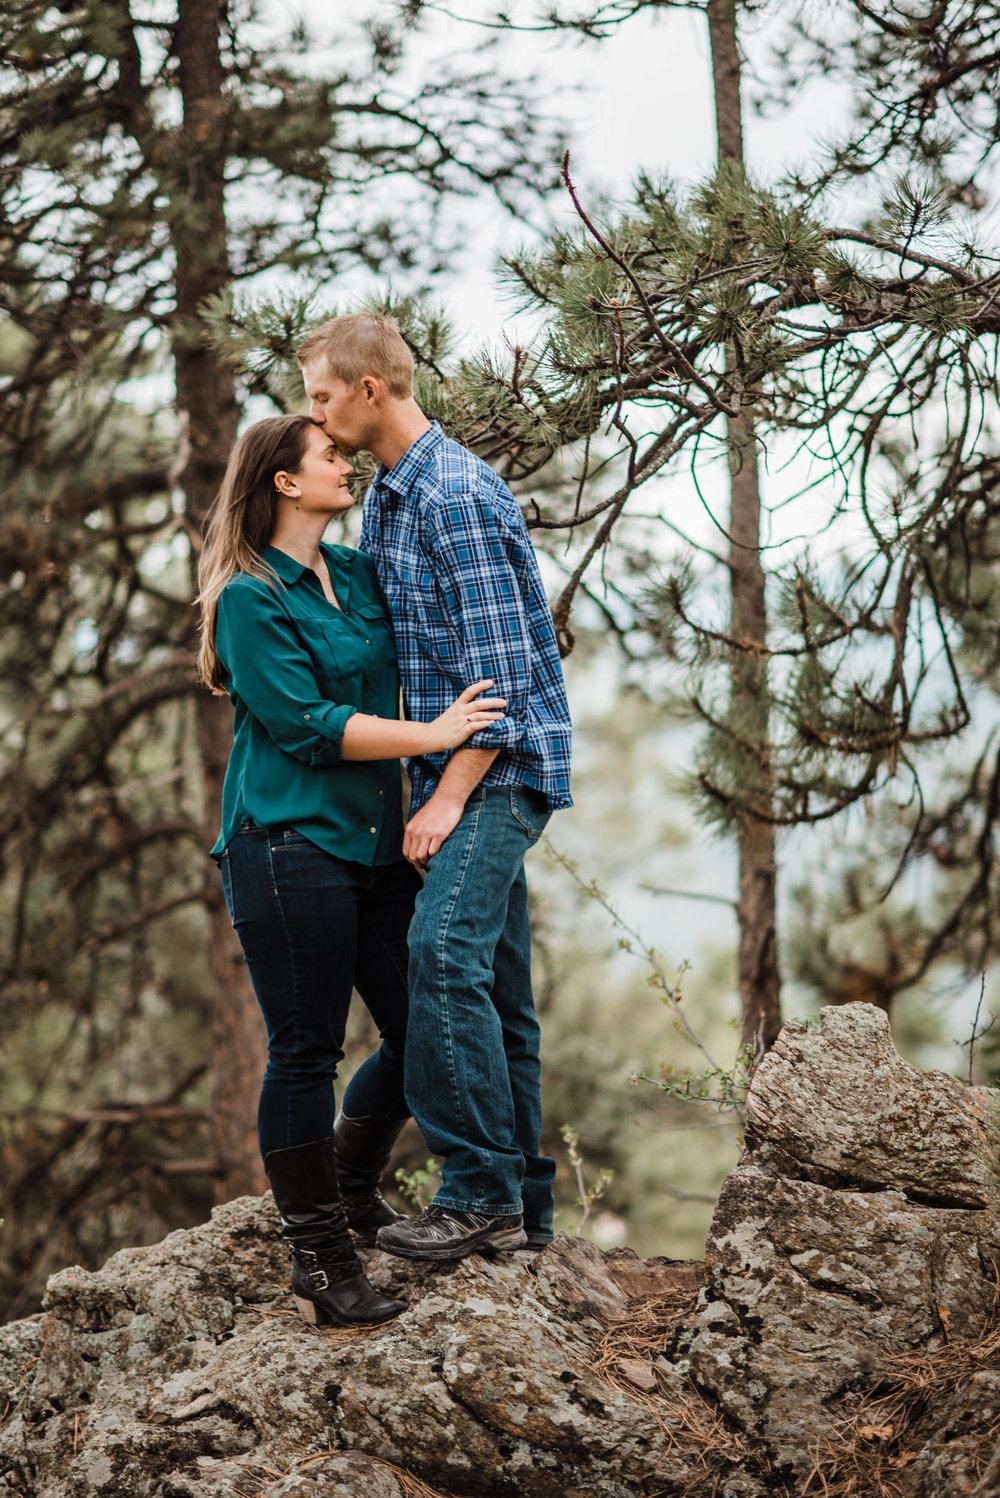 Engagement photos up at Mount Falcon in the Colorado Mountains.